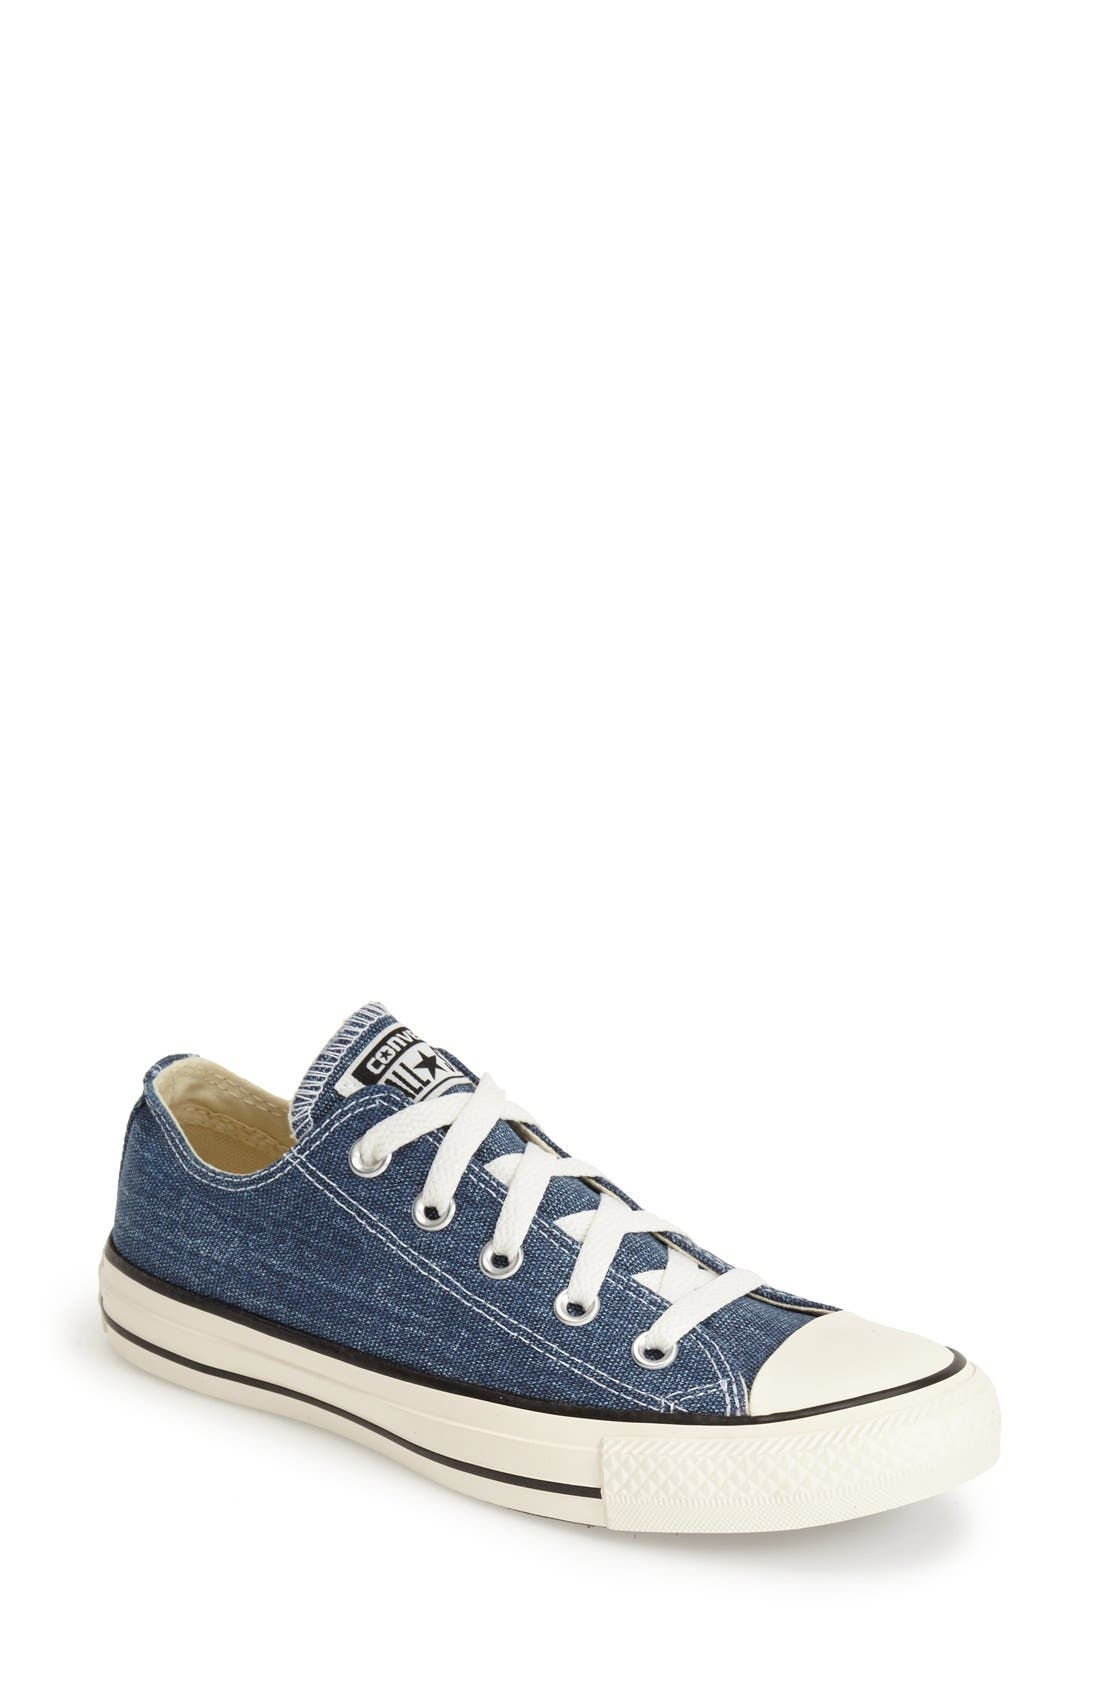 Alternate Image 1 Selected - Converse Chuck Taylor® All Star® Washed Canvas 'Ox' Sneaker (Women)